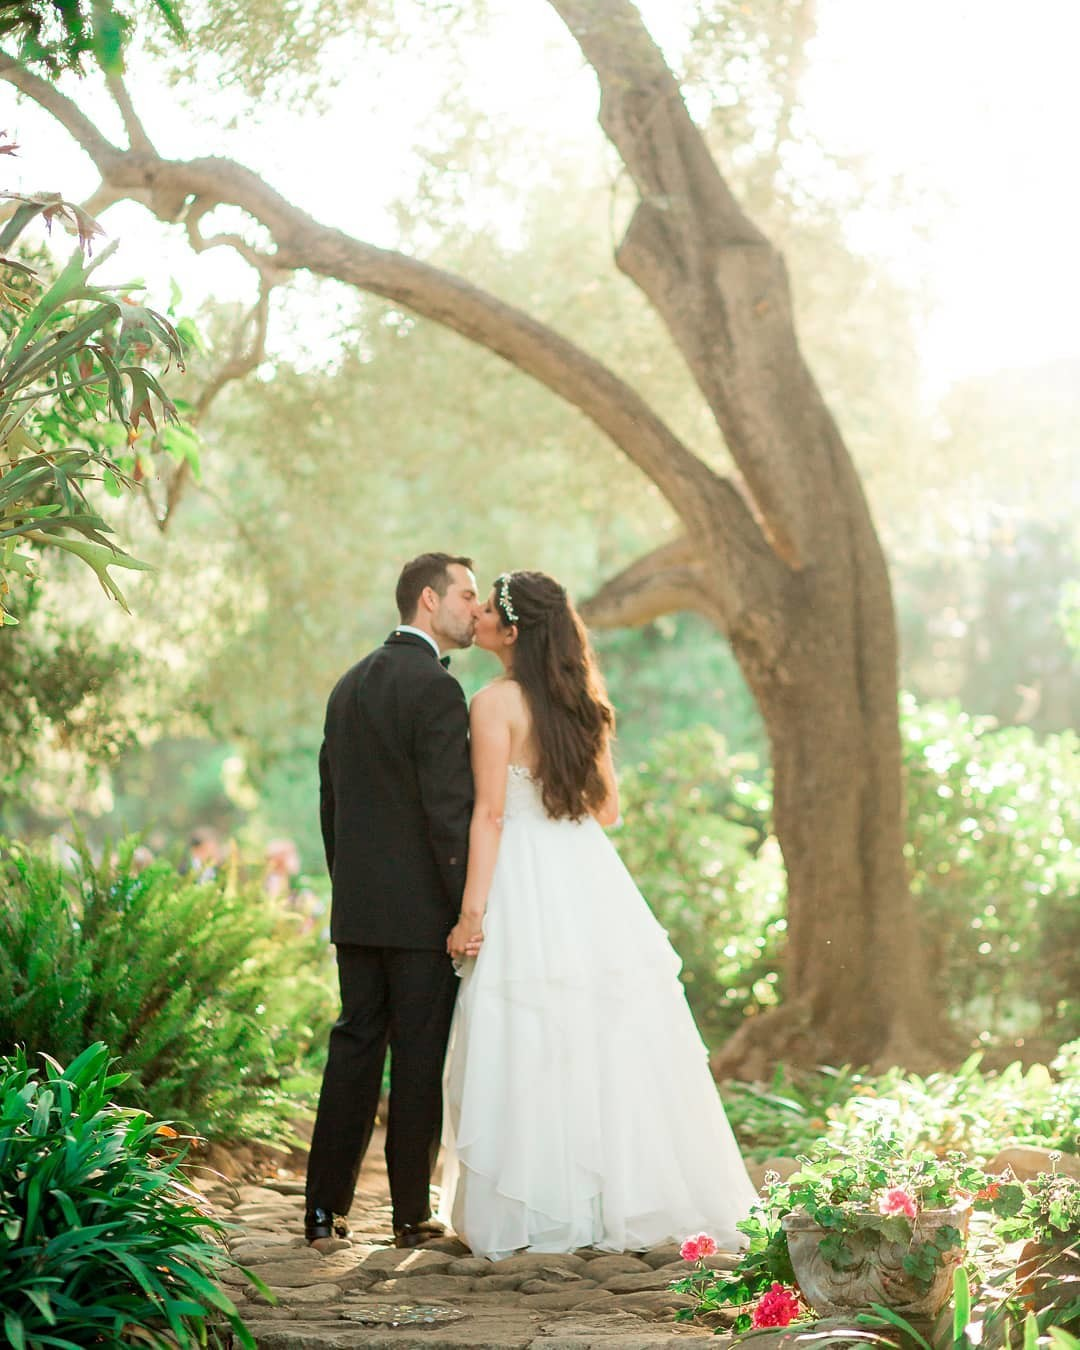 Kelly and Matthew were married in Montecito last summer 💓 ⠀